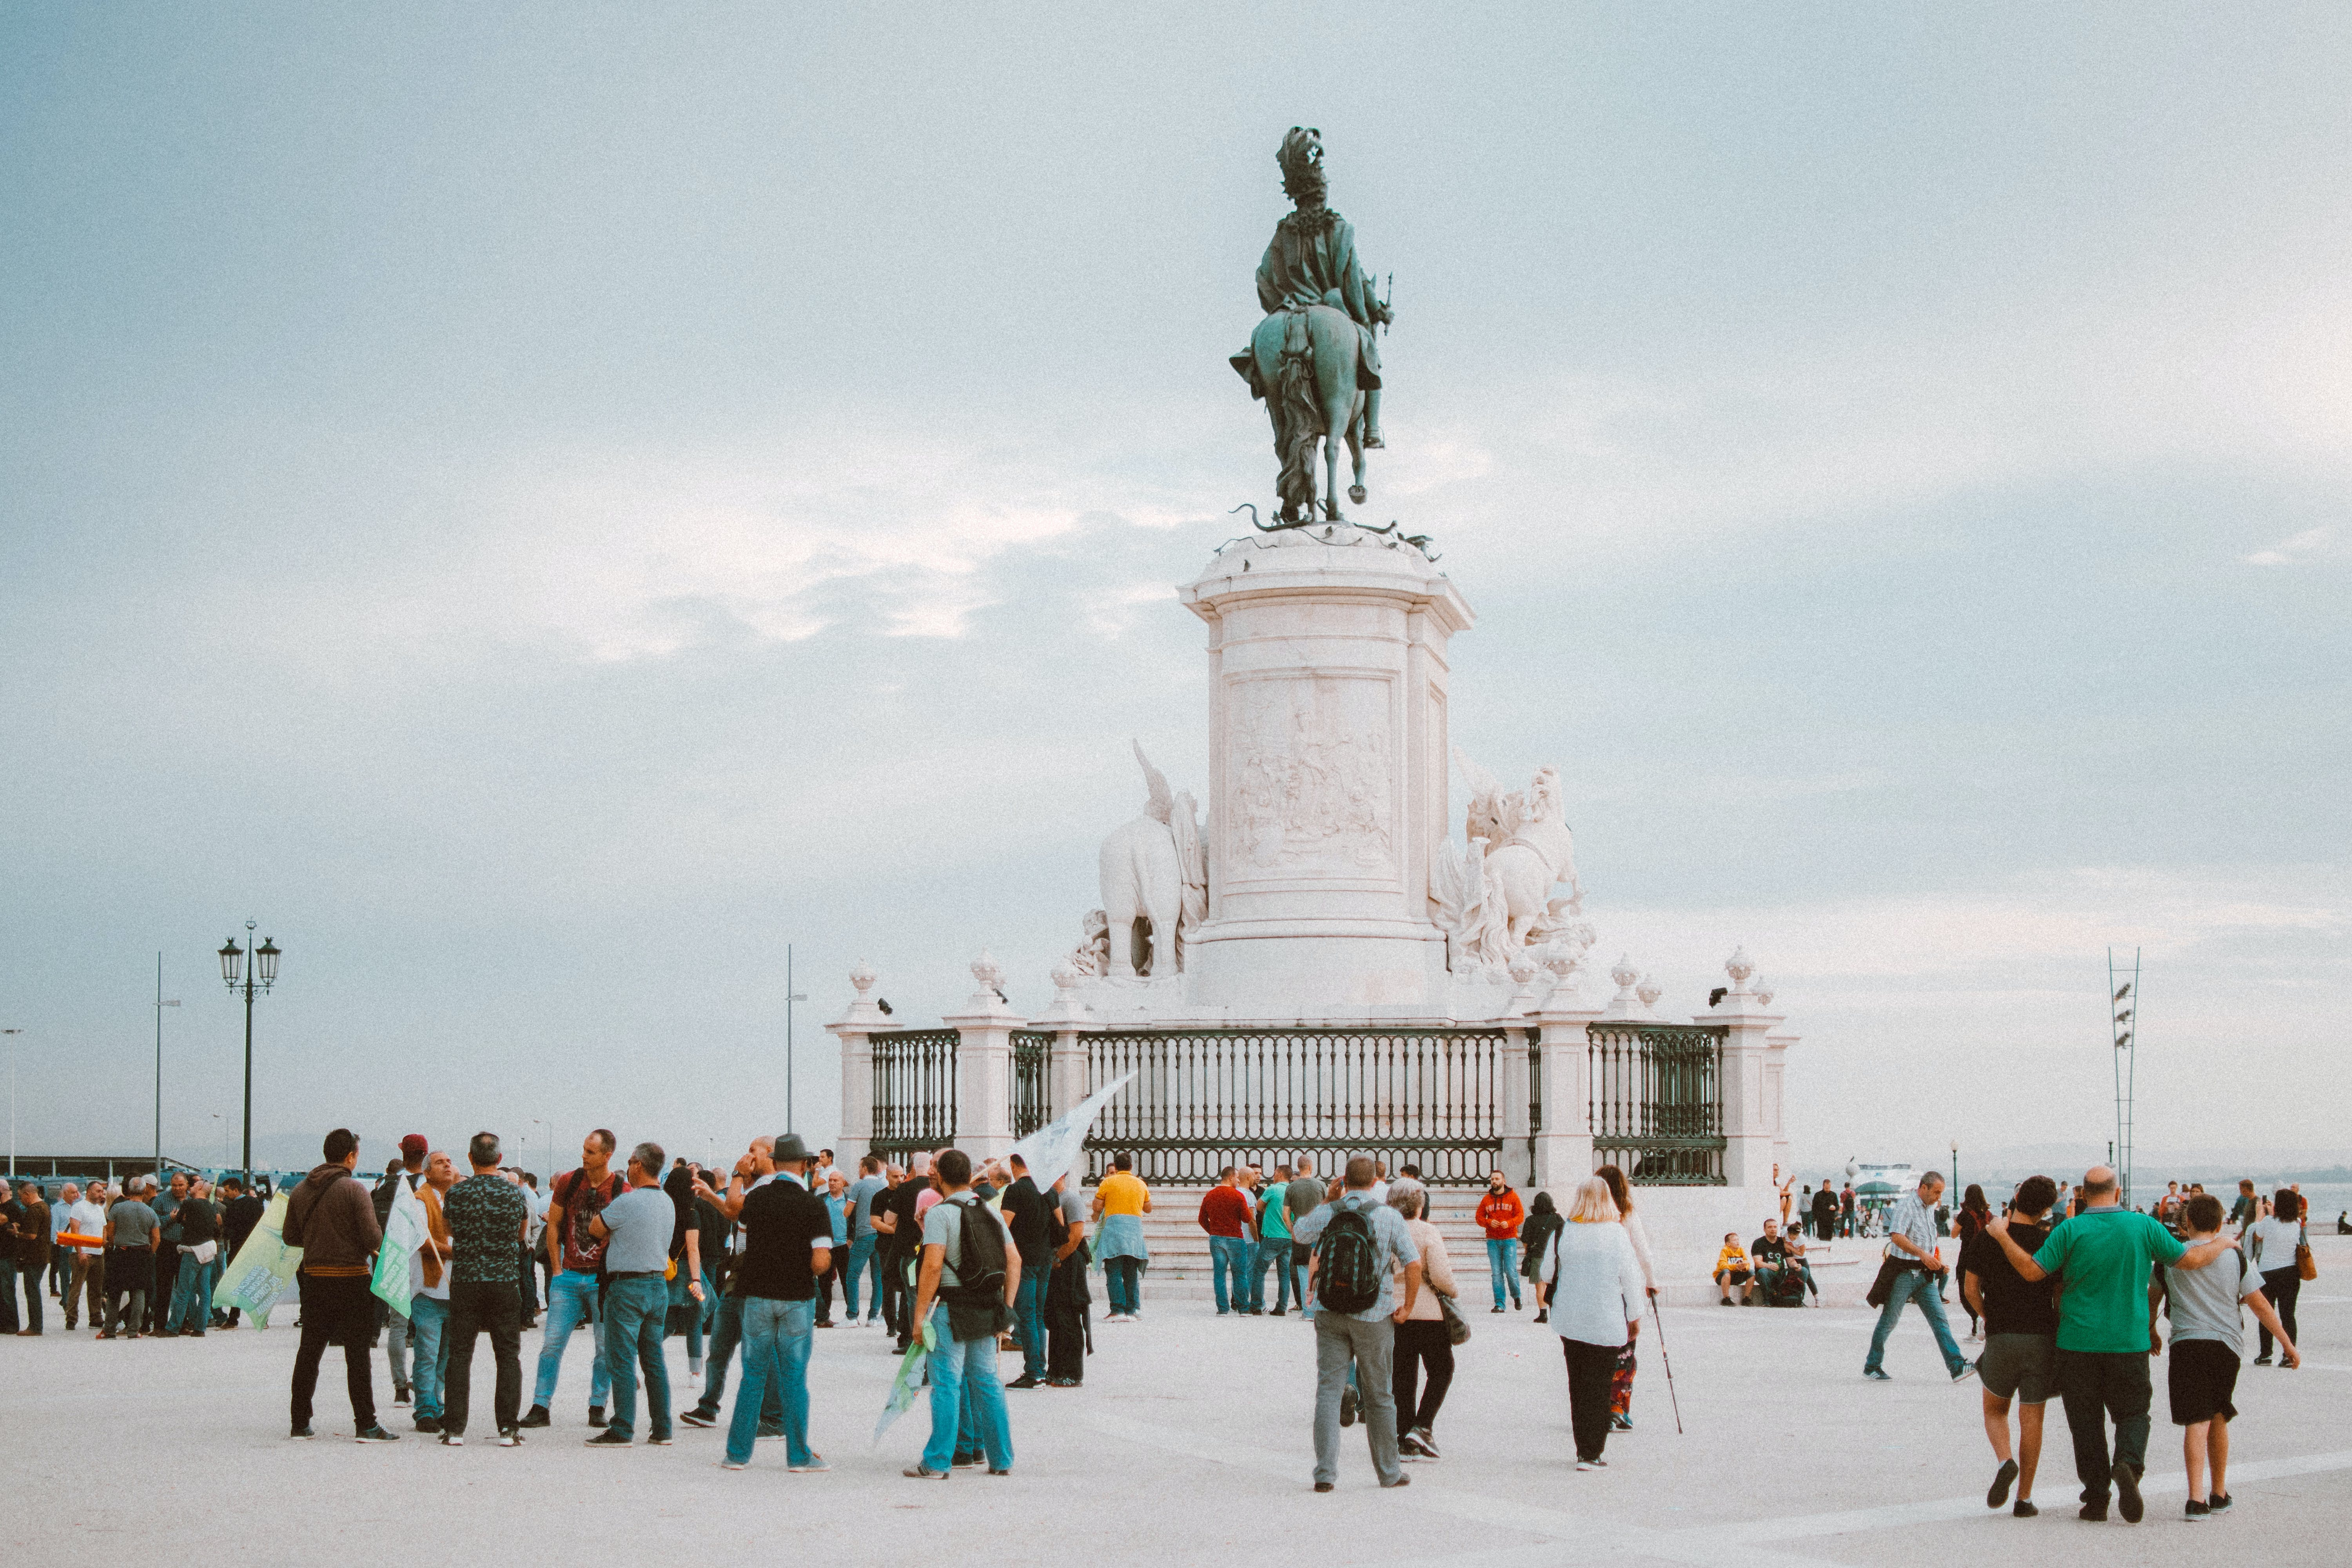 People Standing Near Statue